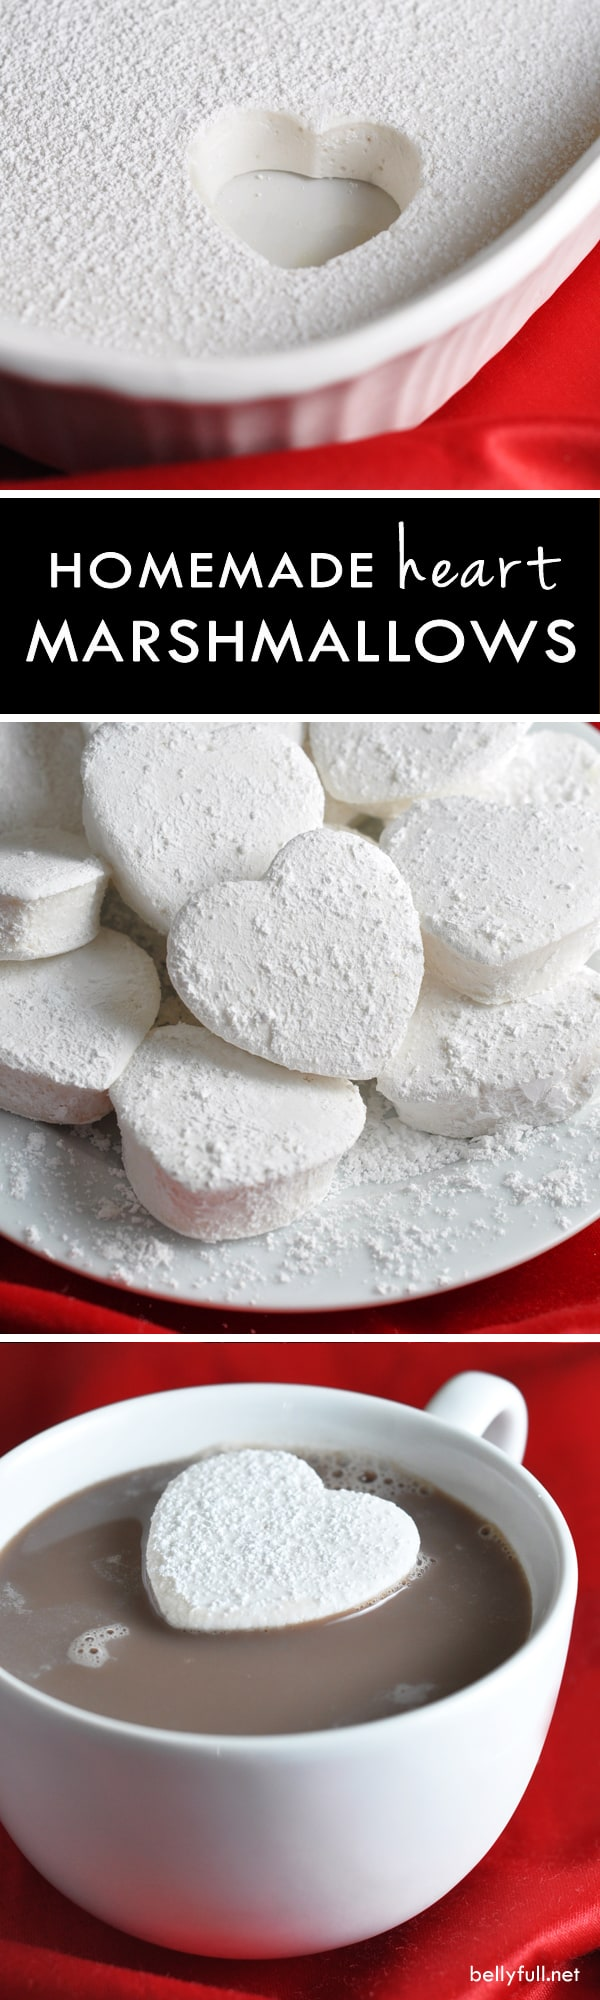 pictures of homemade marshmallows shaped like hearts